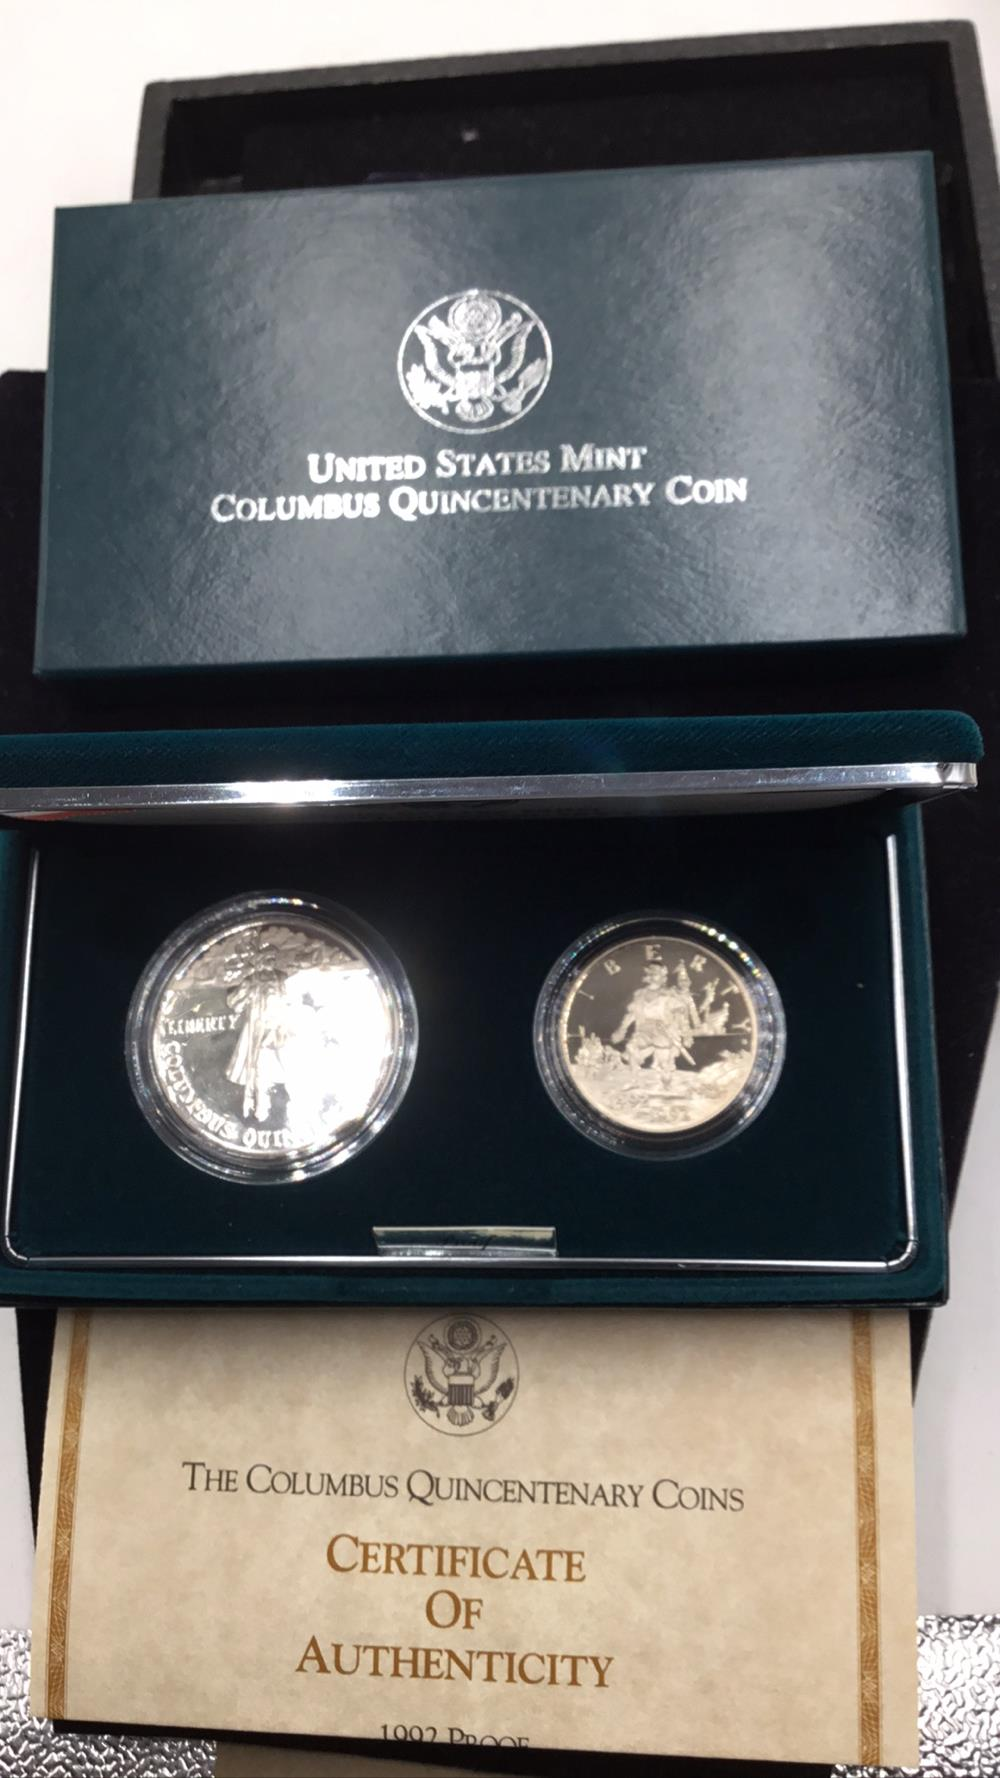 United states mint Columbus Quincentenary Coins